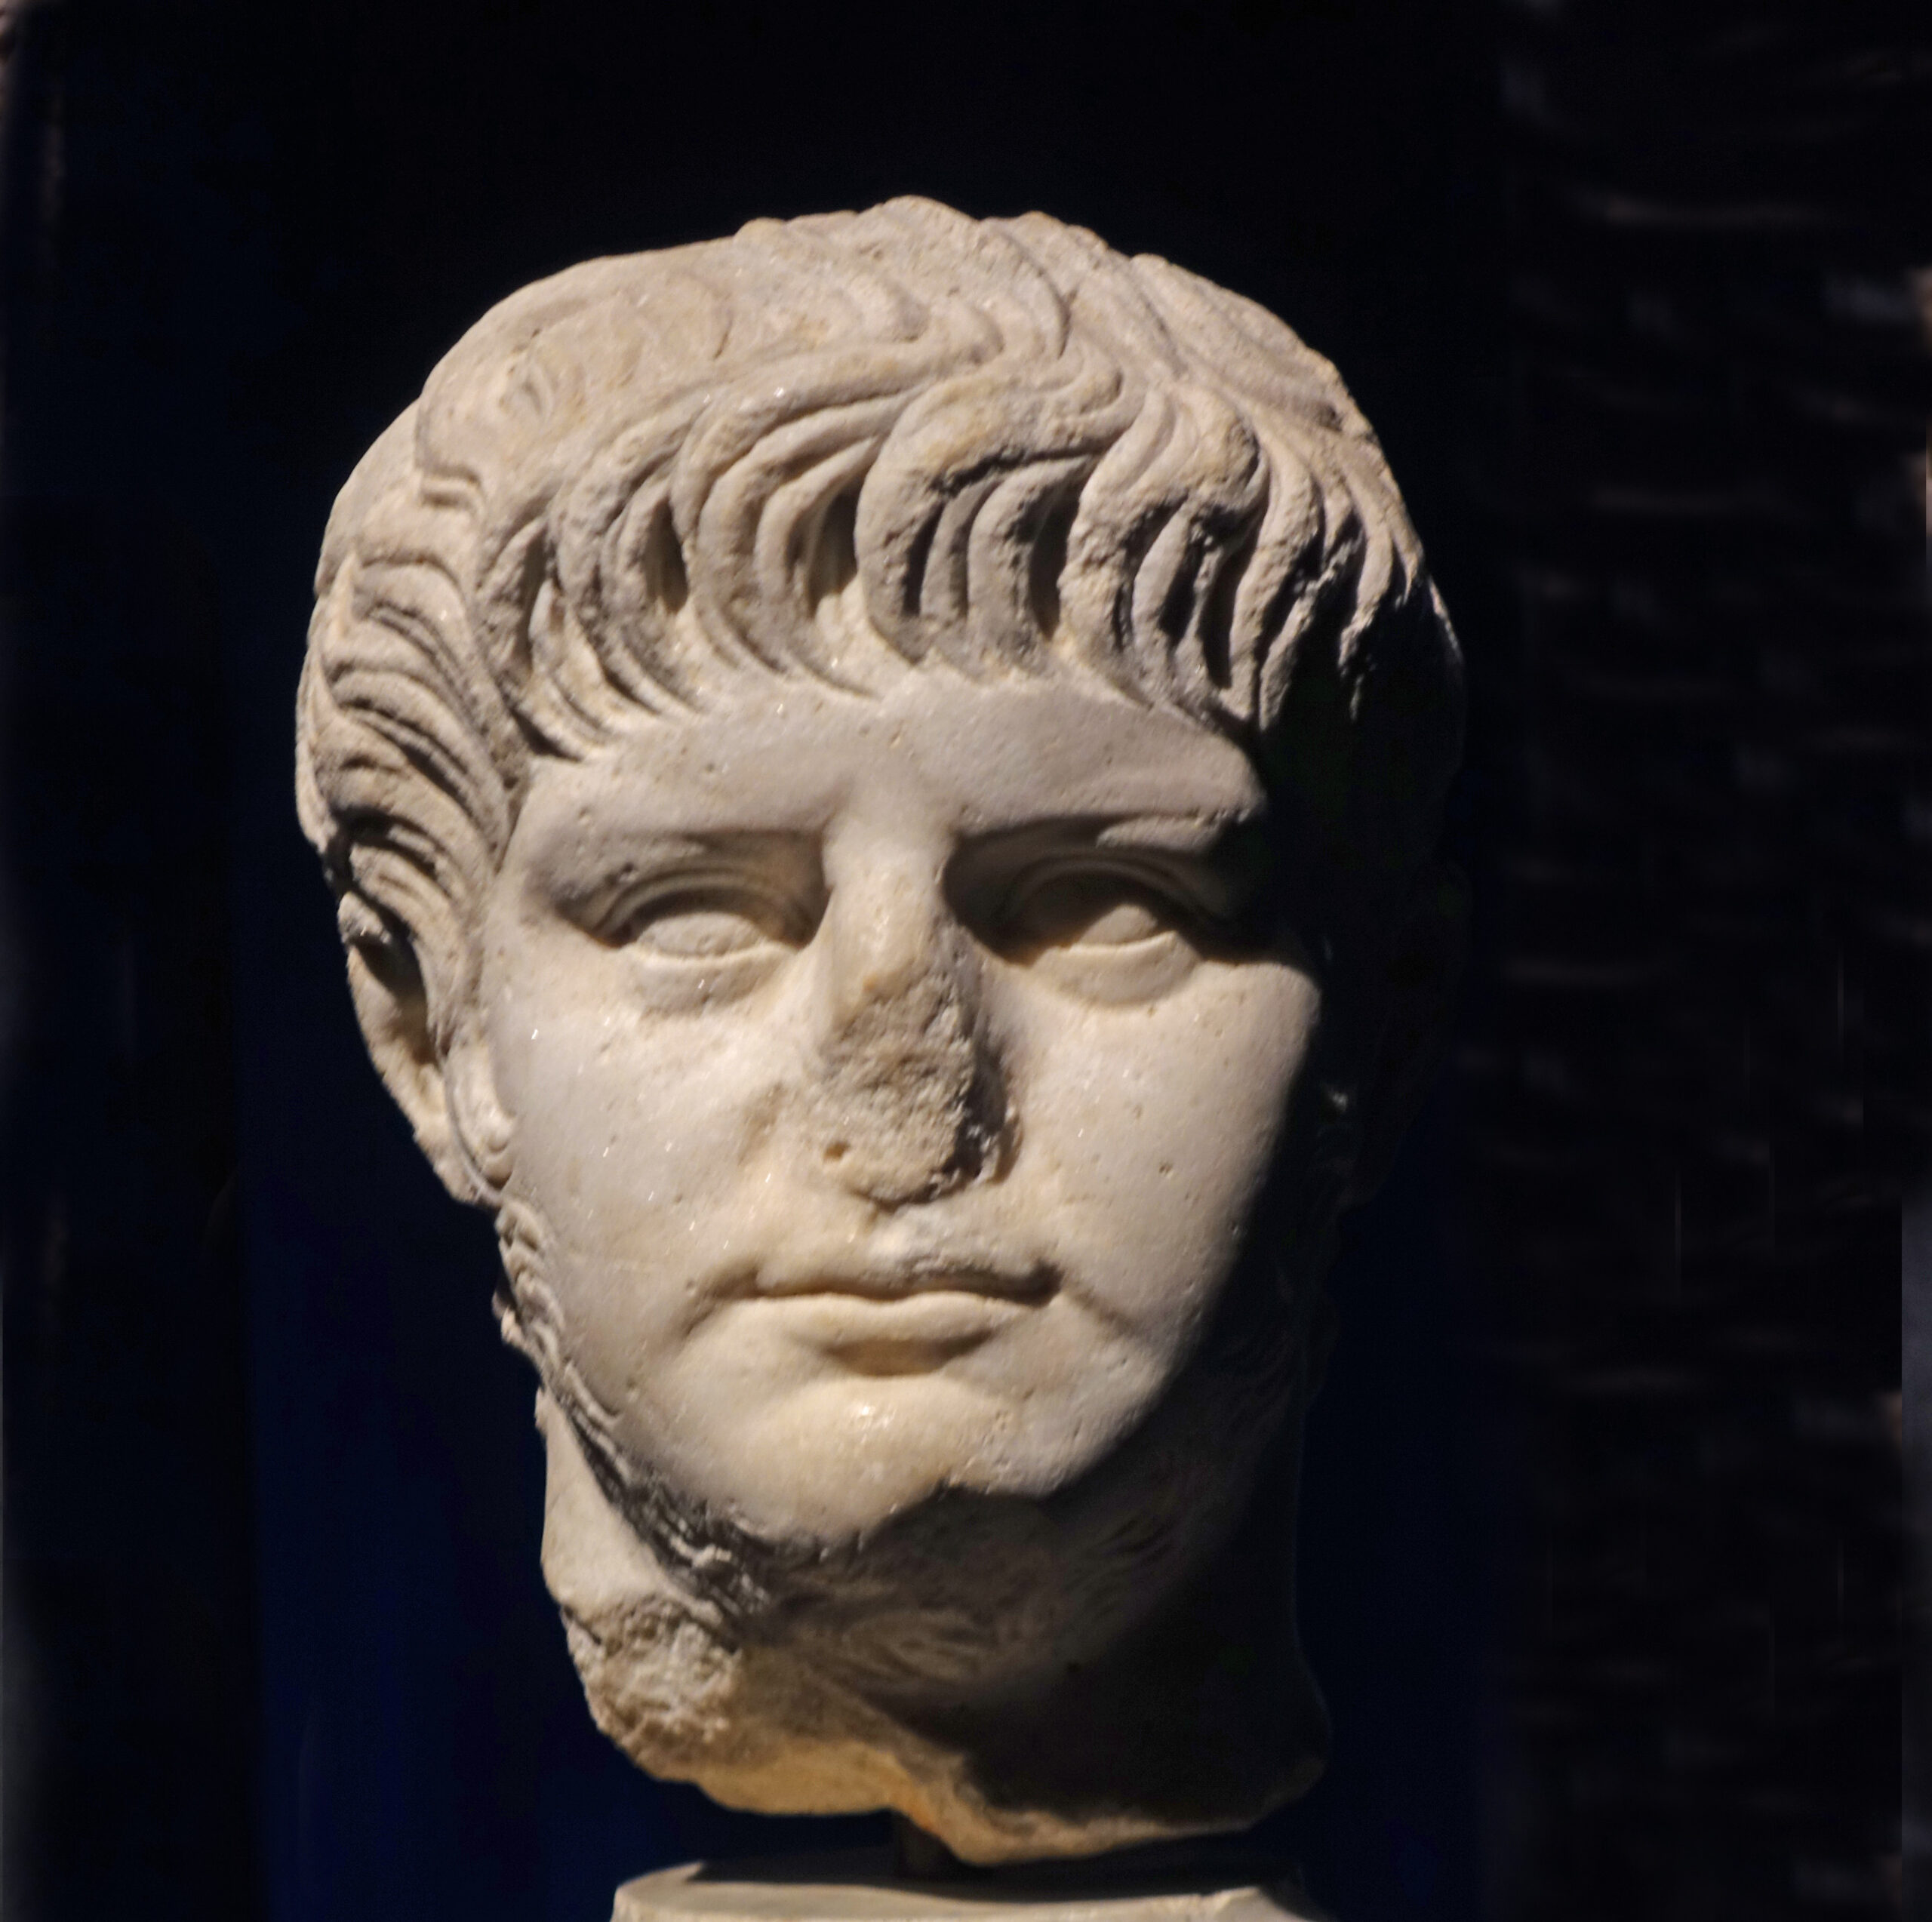 Was Nero really a goodie?